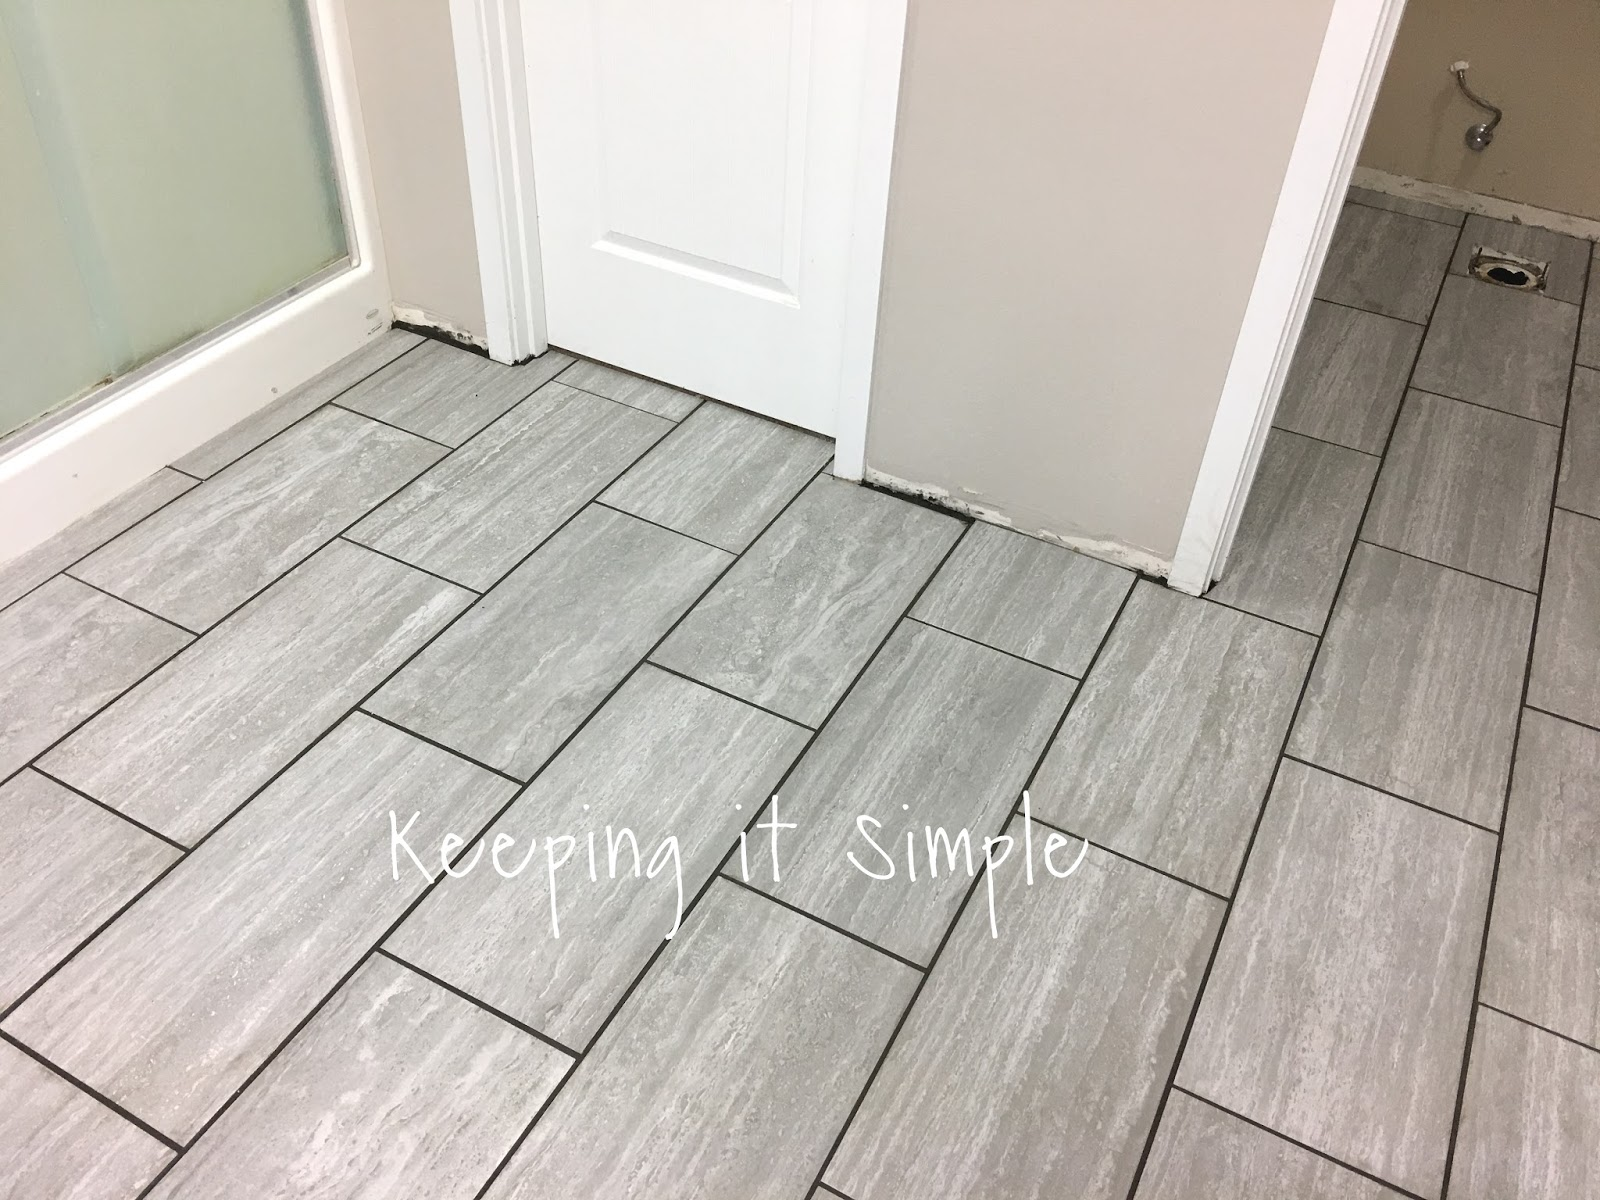 Tips on how to install tile flooring in a bathroom with ridgemont once the grout had set for about 36 hours we sealed the grout lines and then we put the toilet back on we ended up getting a new toilet dailygadgetfo Images